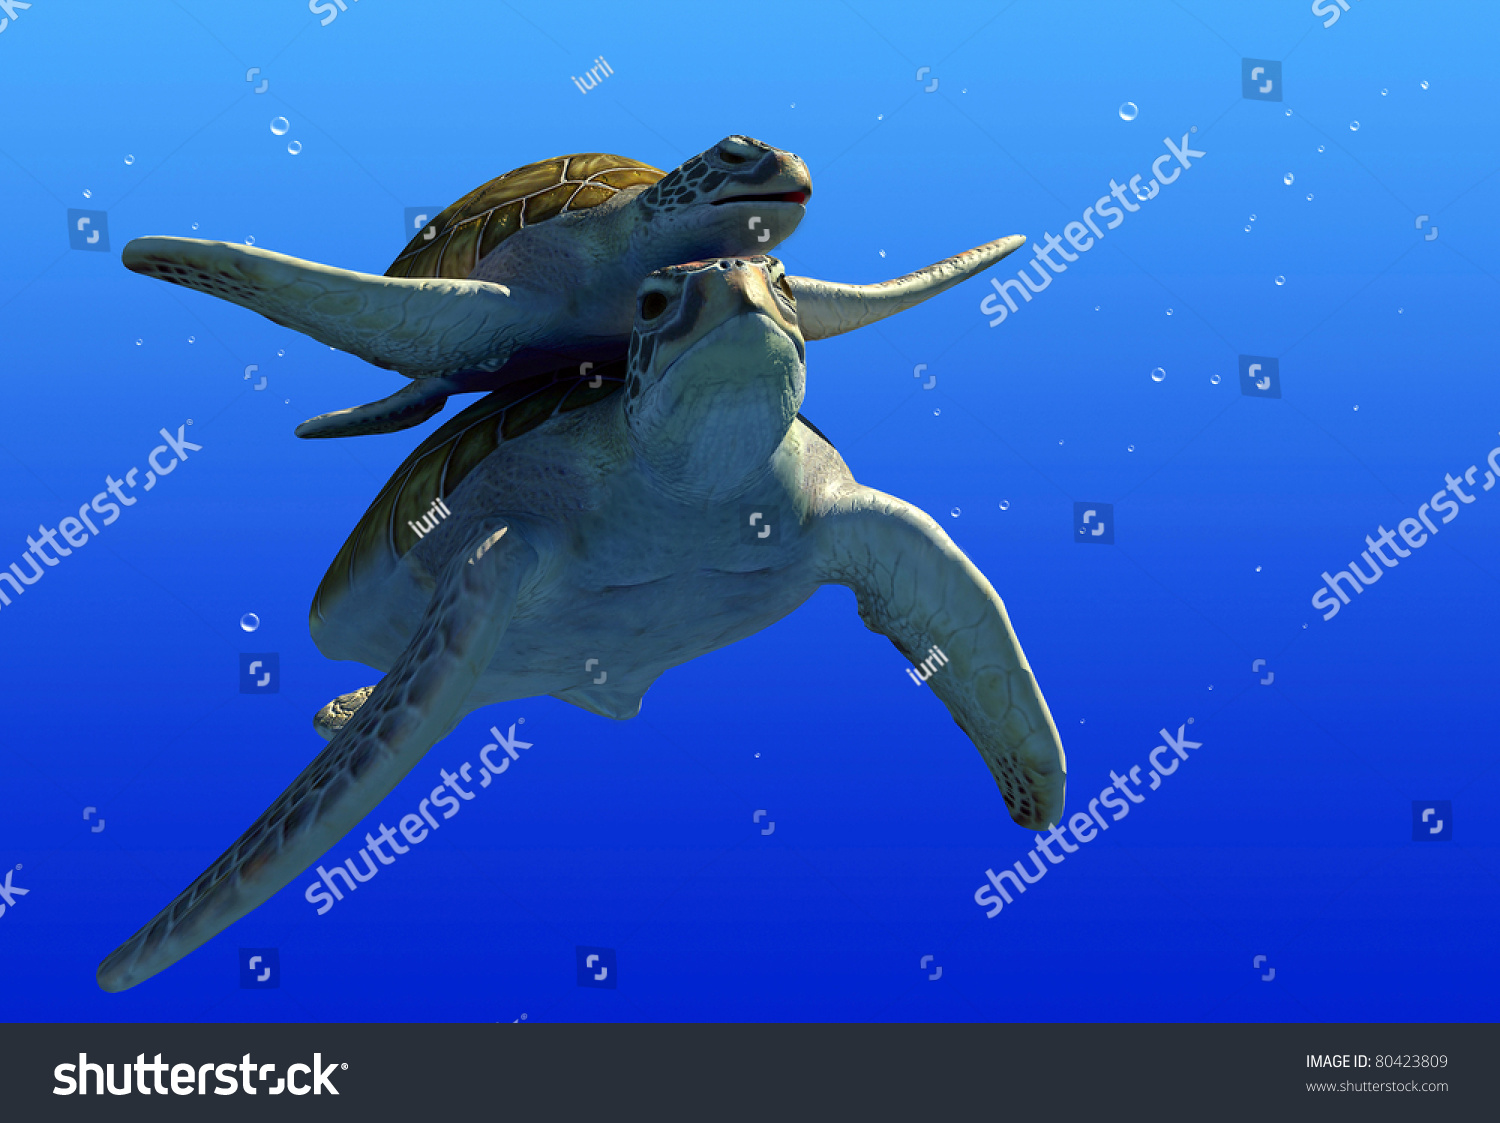 turtles under water on a blue background stock photo